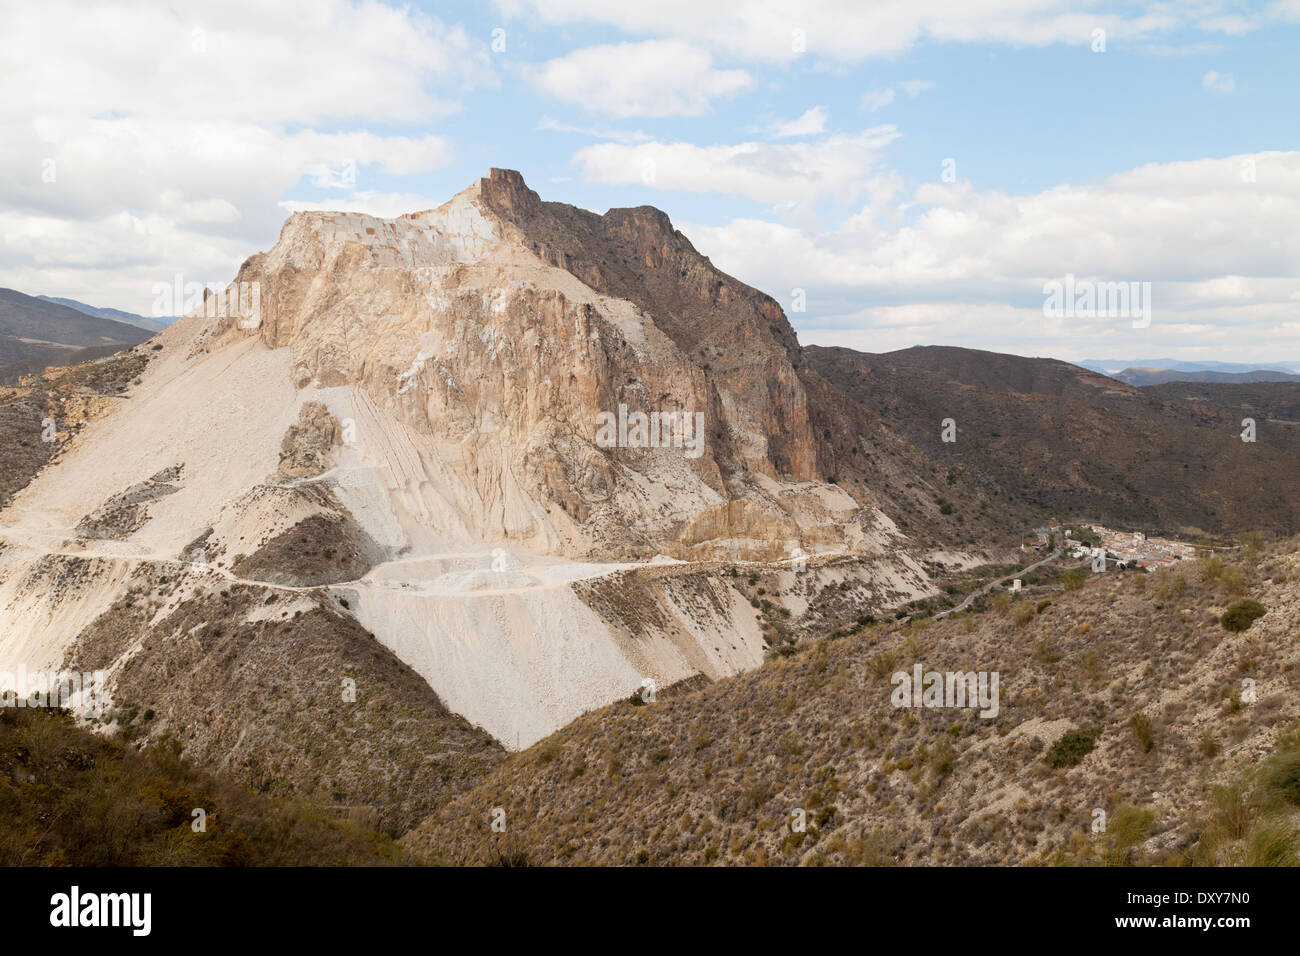 An open white marble mine on a mountain in the Sierra de los Fibrales, by the town of Cobdar, Andalusia Spain Europe - Stock Image